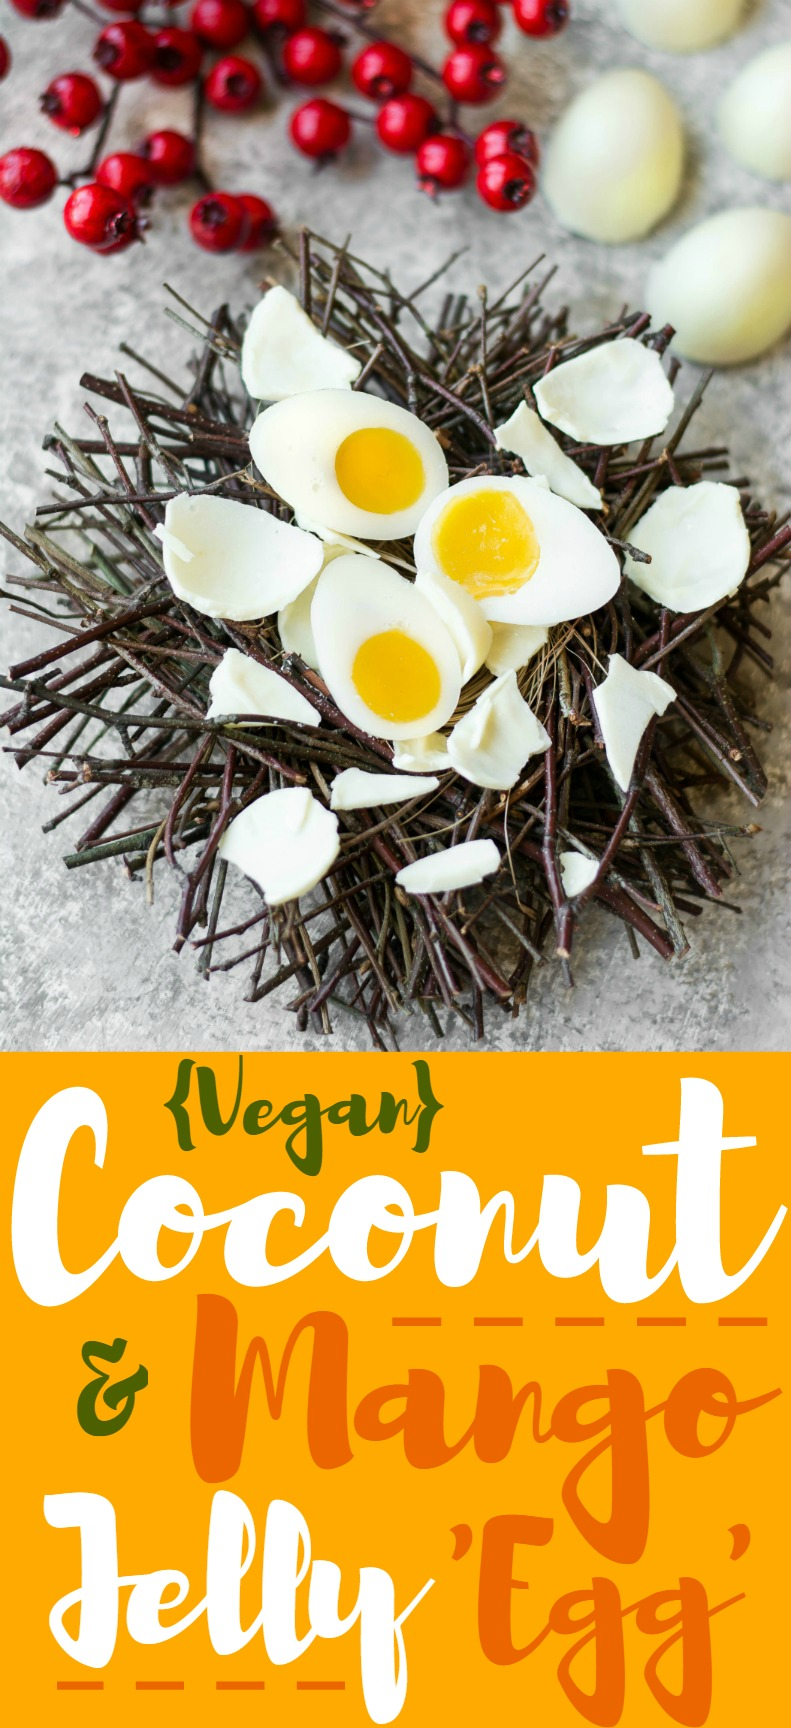 Try this almost Vegan Coconut Mango Jelly Easter 'Egg' made with coconut 'white' & mango 'yolk' complete with a white chocolate shell!